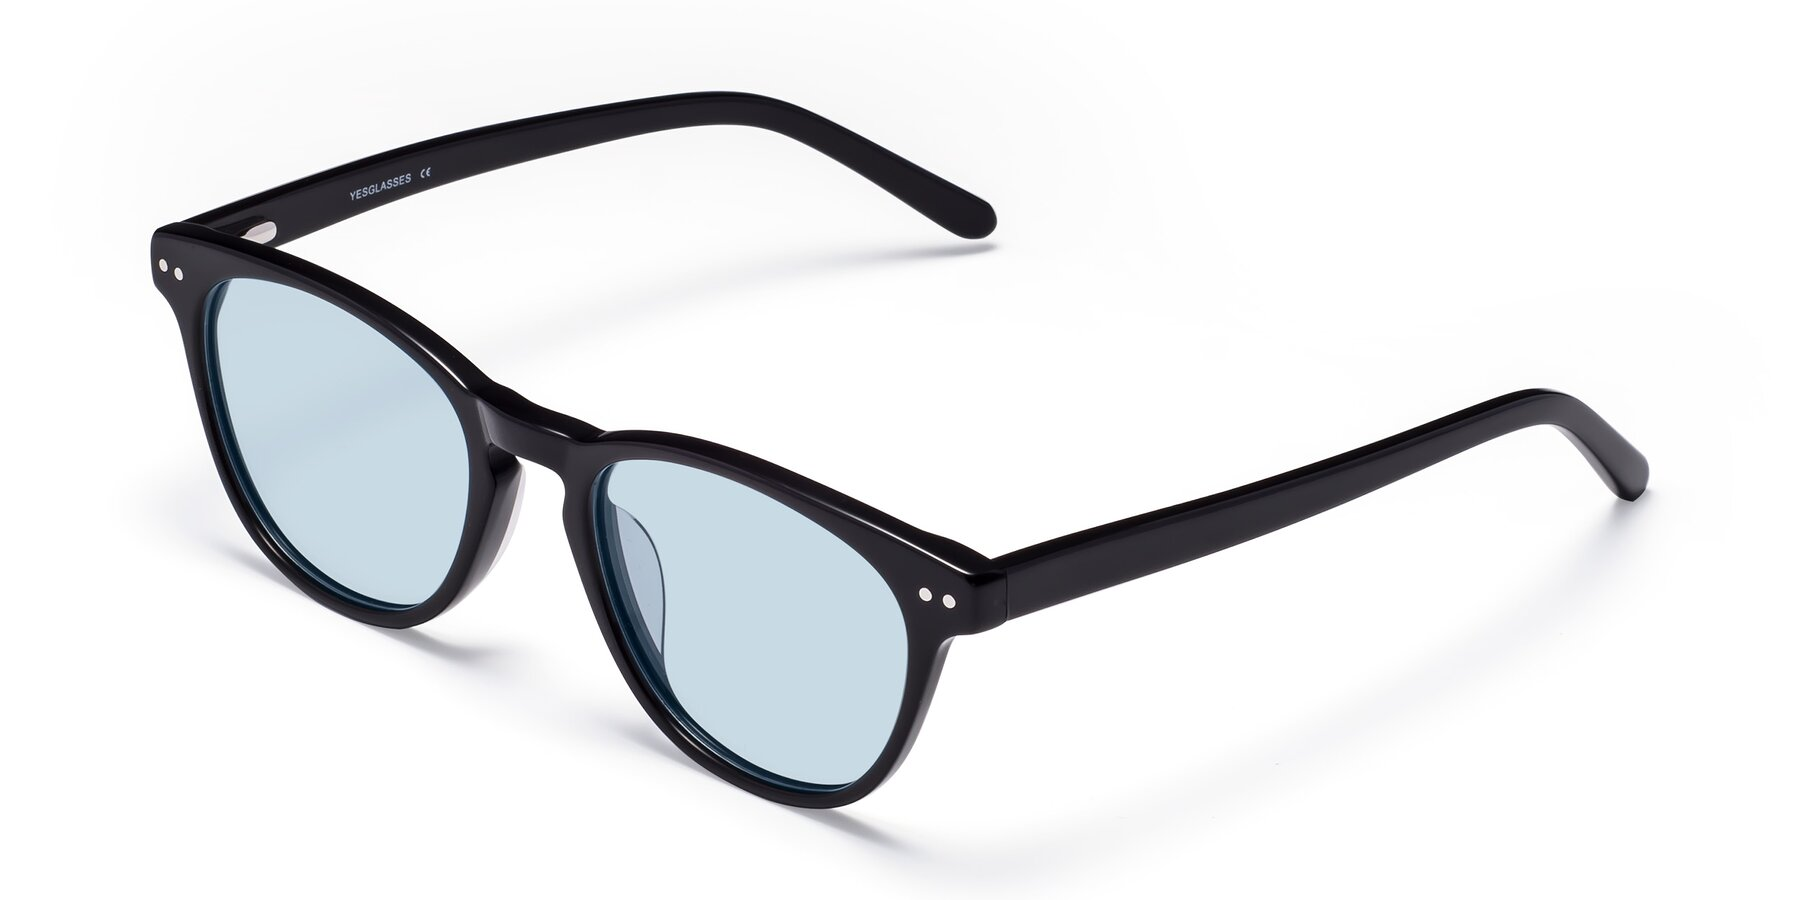 Angle of Blaze in Black with Light Blue Tinted Lenses